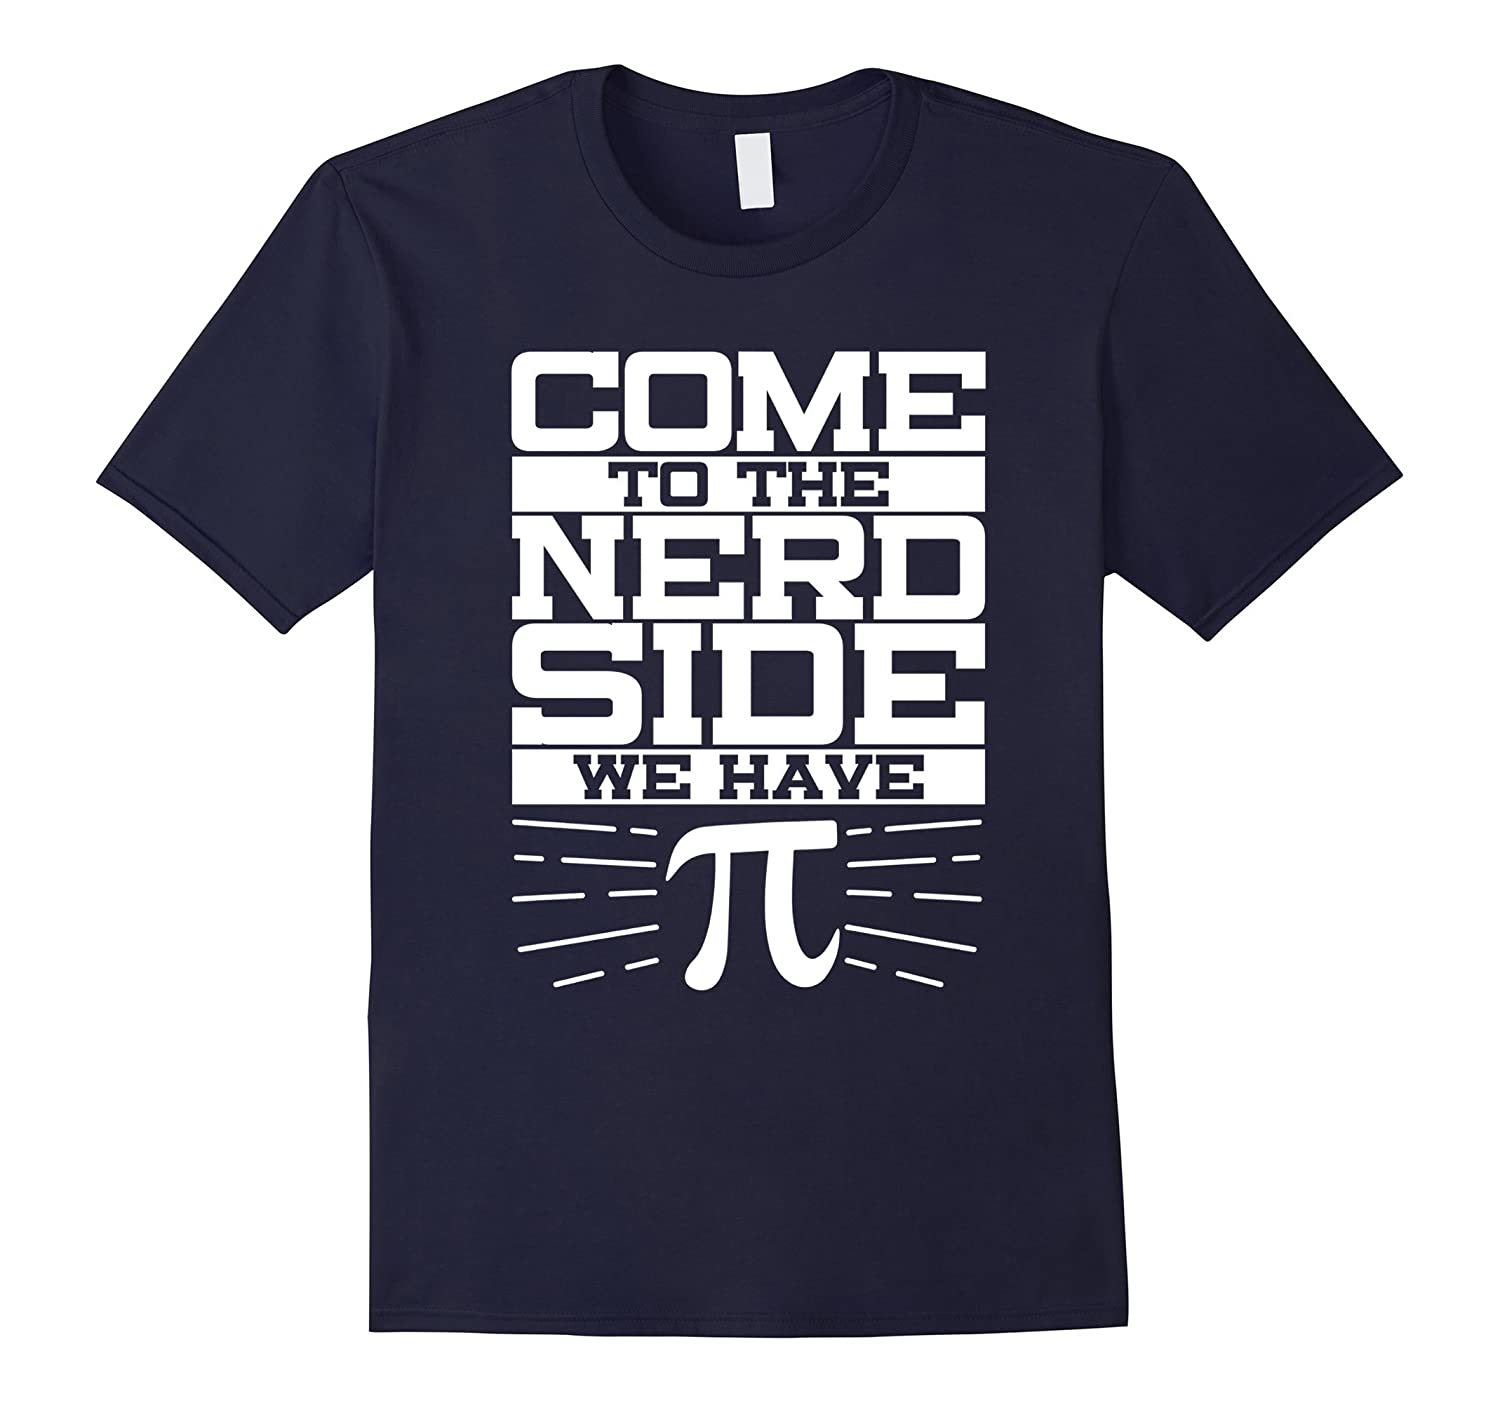 Come To The Nerd Side We Have Pi 3.14 Funny Math Geek Shirt-T-Shirt